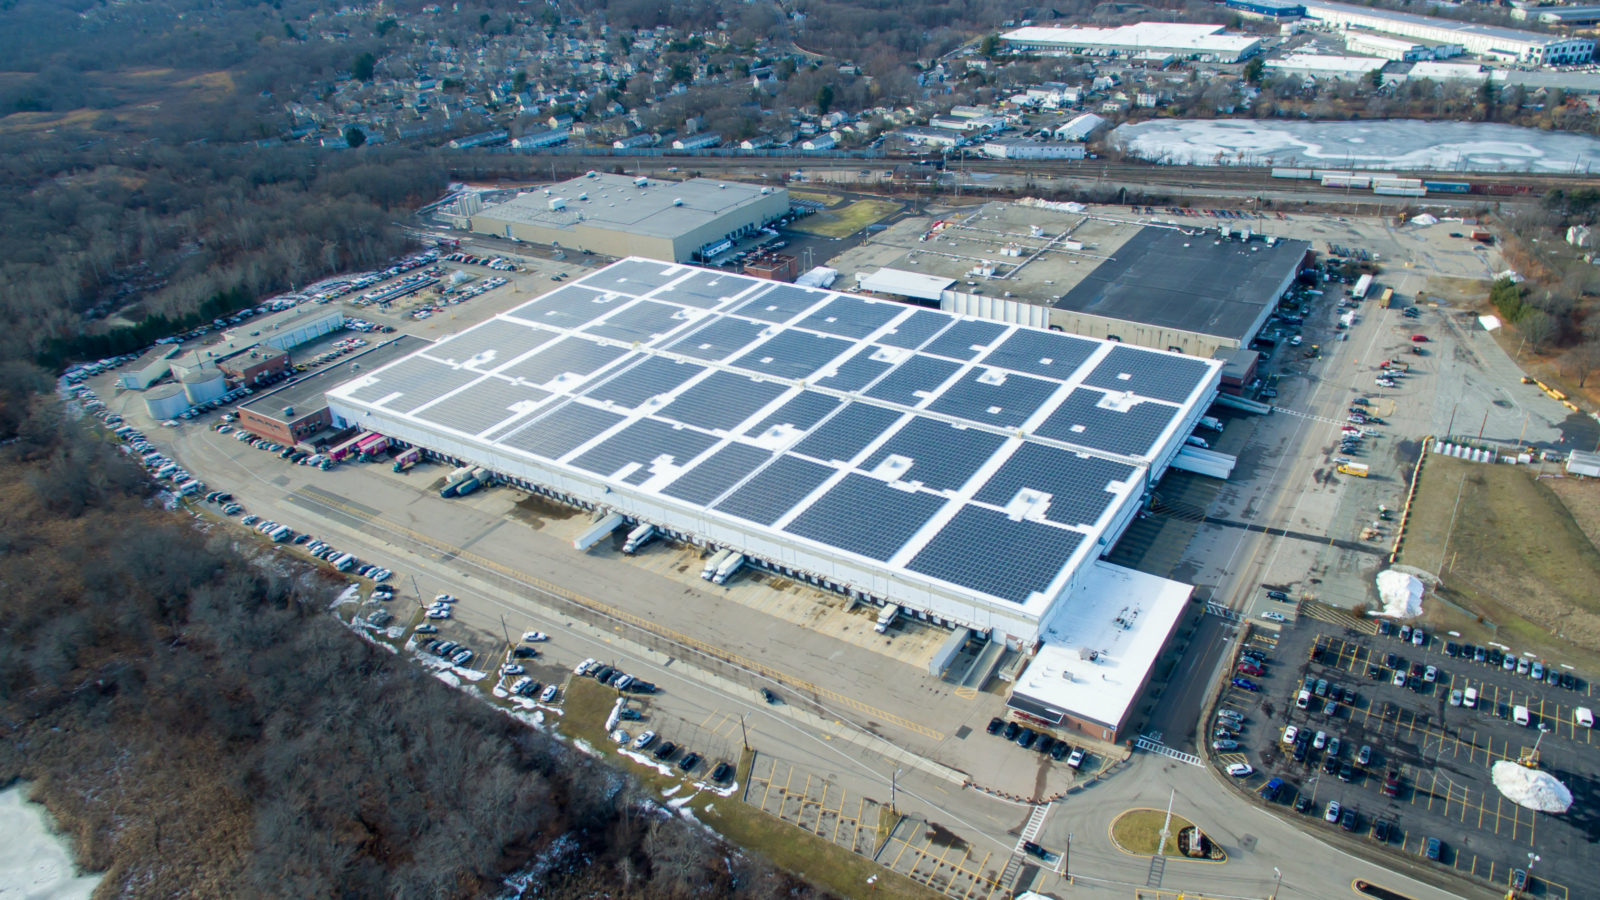 Commercial solar giant mulls expanding into Maine